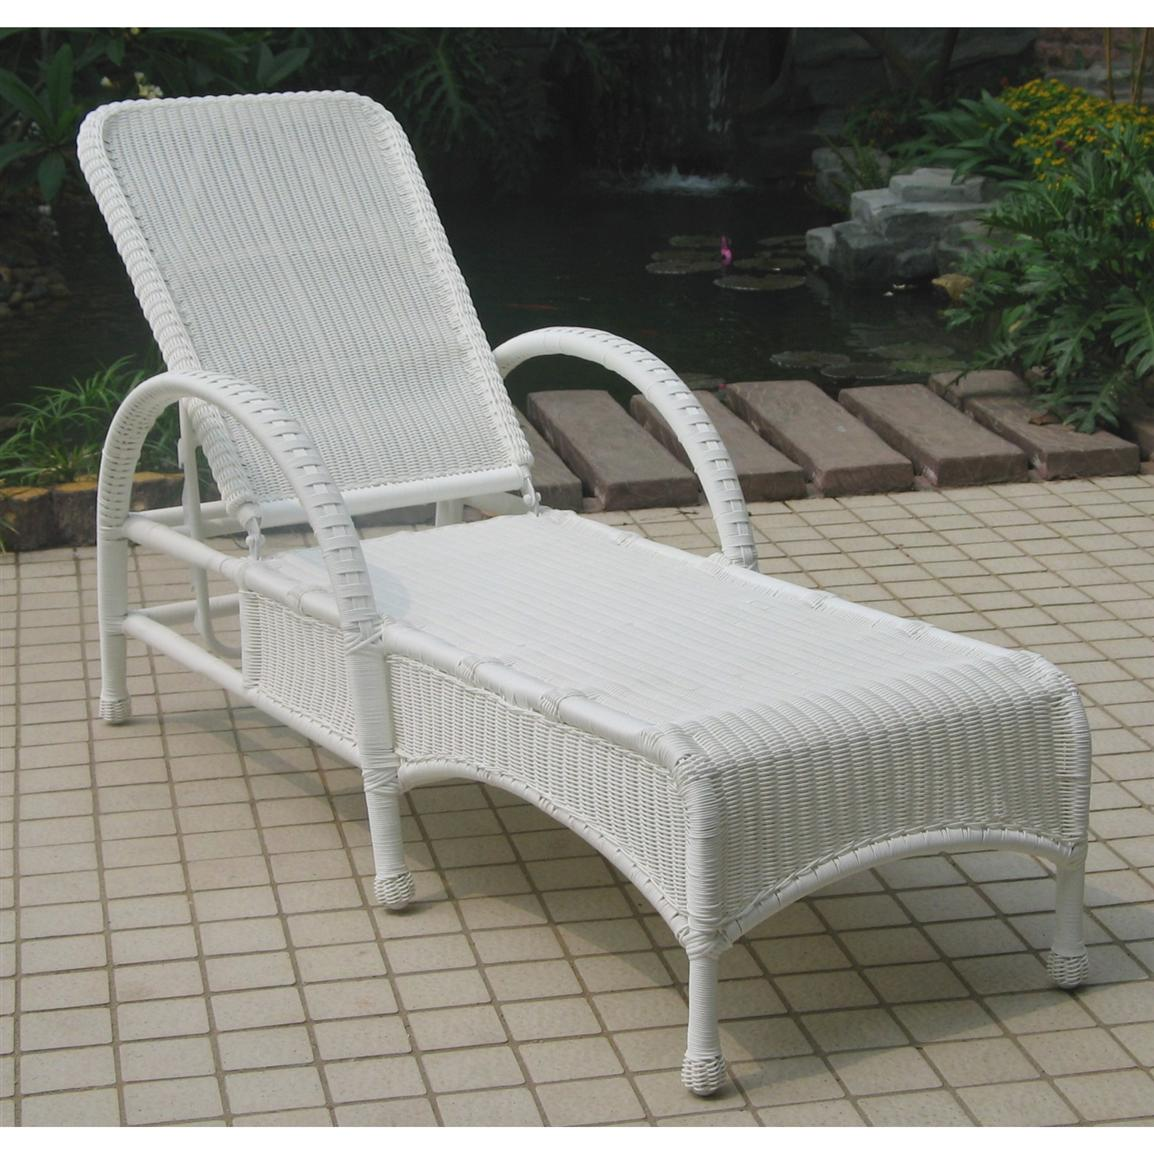 Chicago Wicker Darby All Weather Wicker Chaise Lounge : chaise lounge chicago - Sectionals, Sofas & Couches